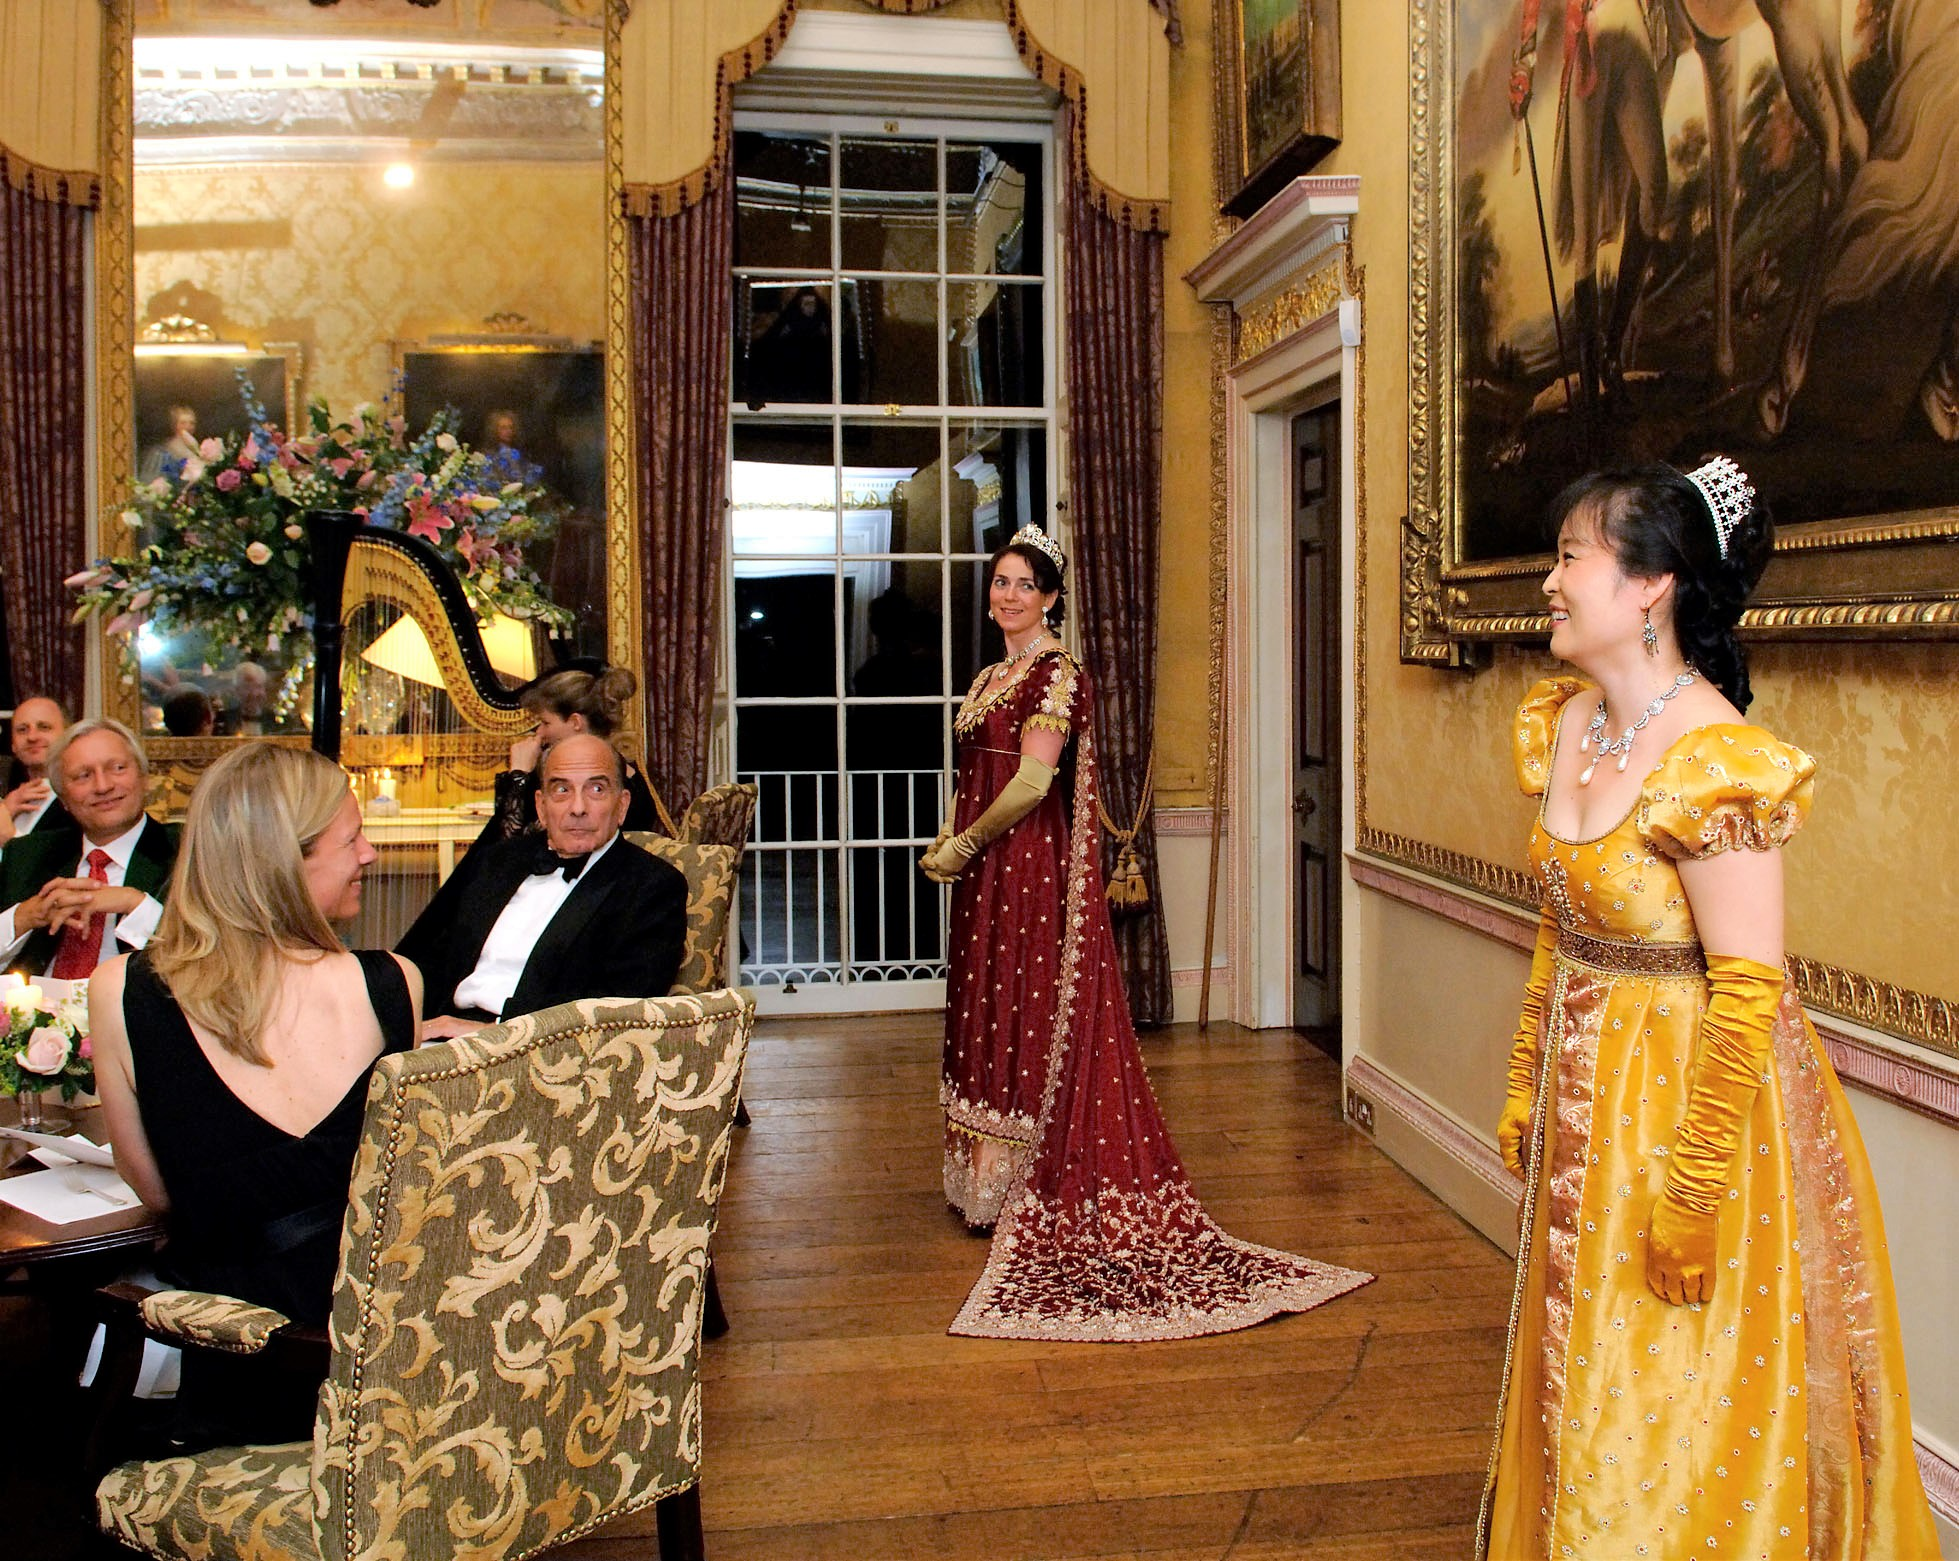 London Festival Opera Opera Soiree in Regency Costume Brocket Hall